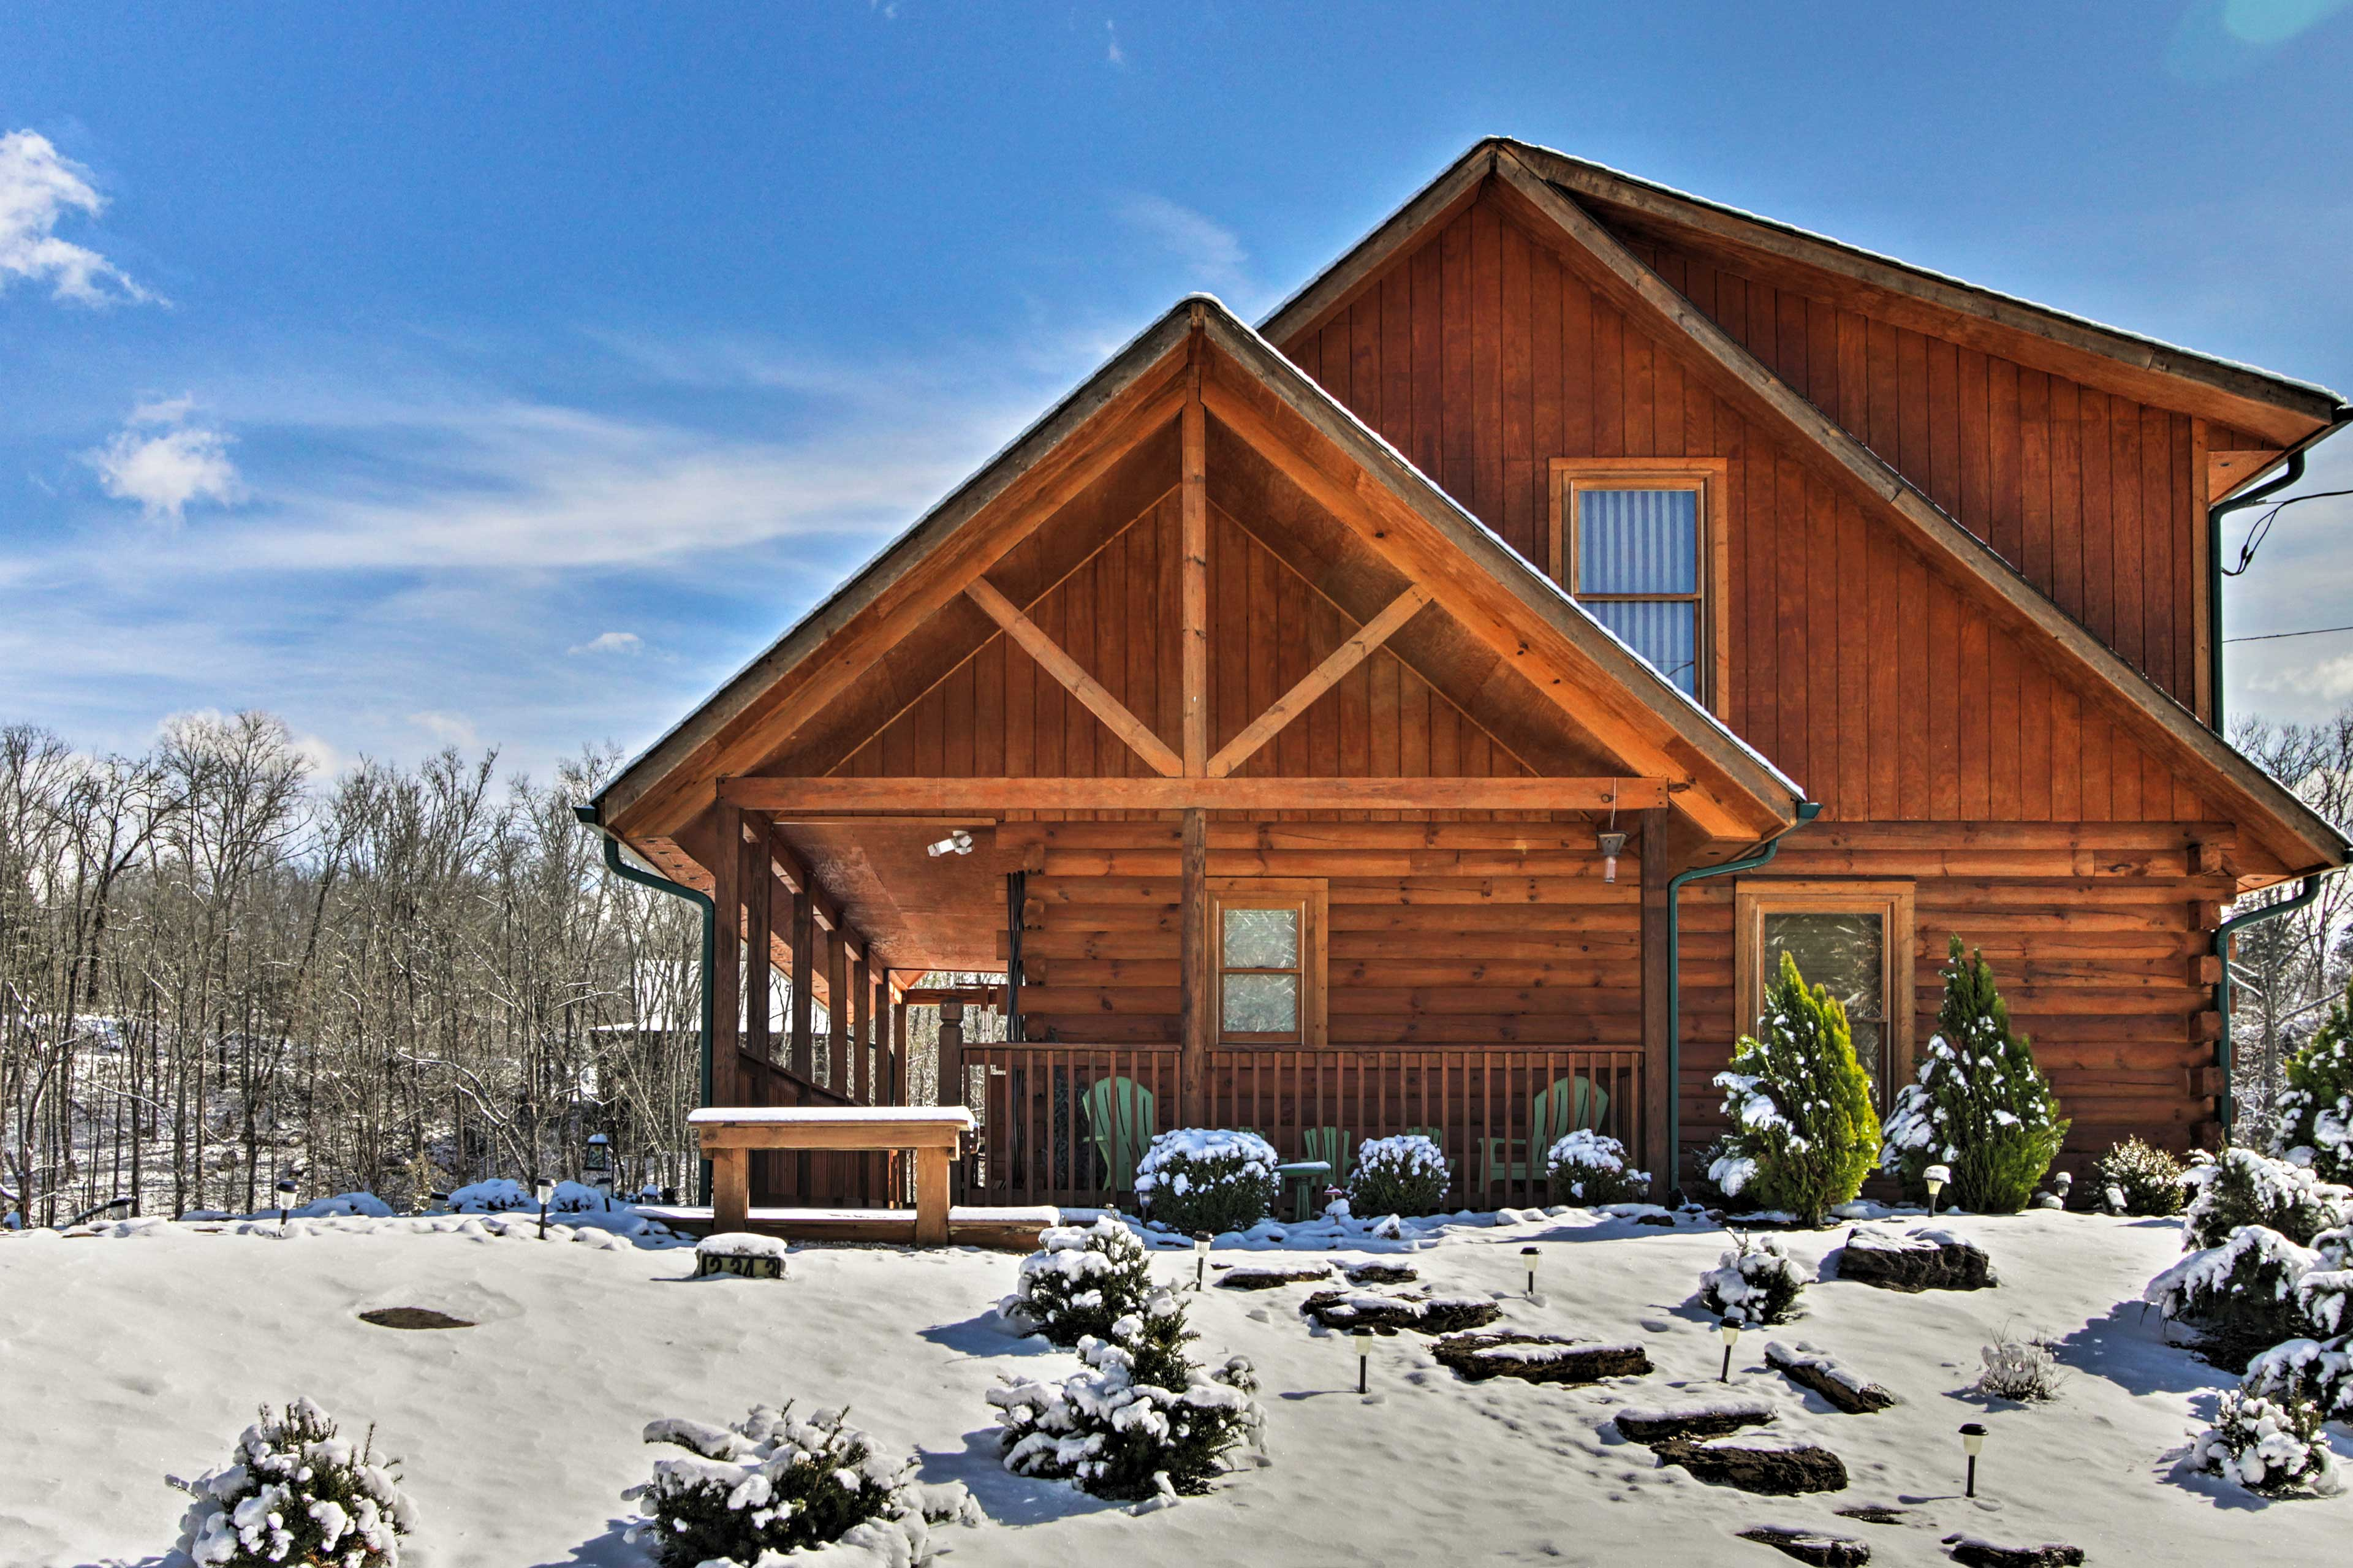 Discover peace and relaxation at this 2-bedroom, 2-bath Sevierville cabin!